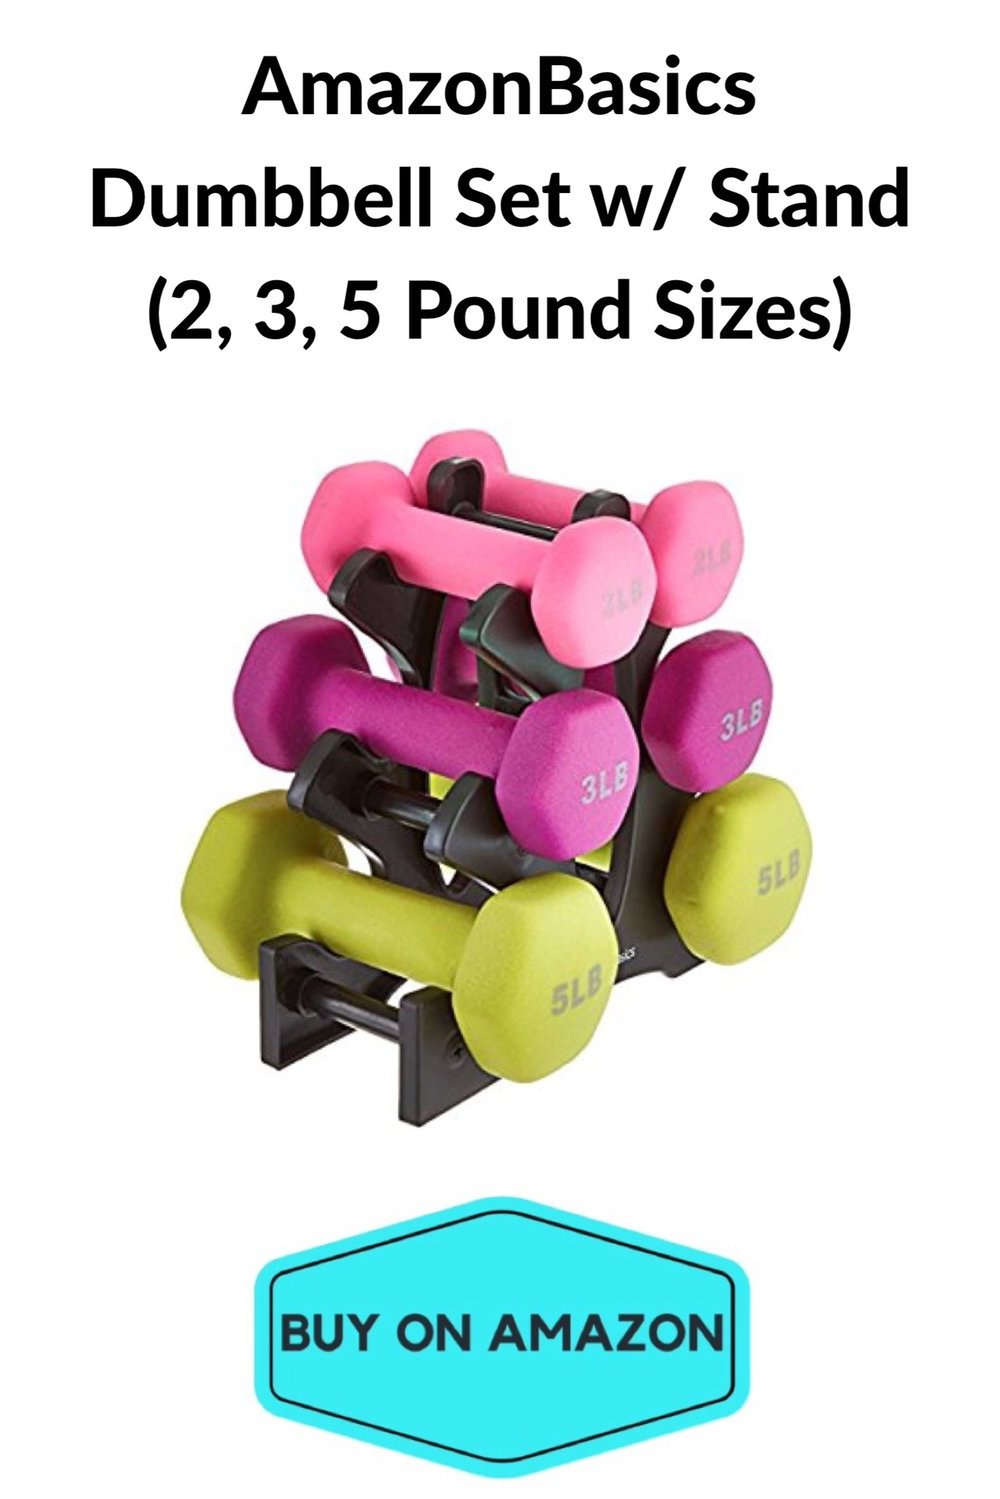 AmazonBasics Dumbbell Set w/ Stand